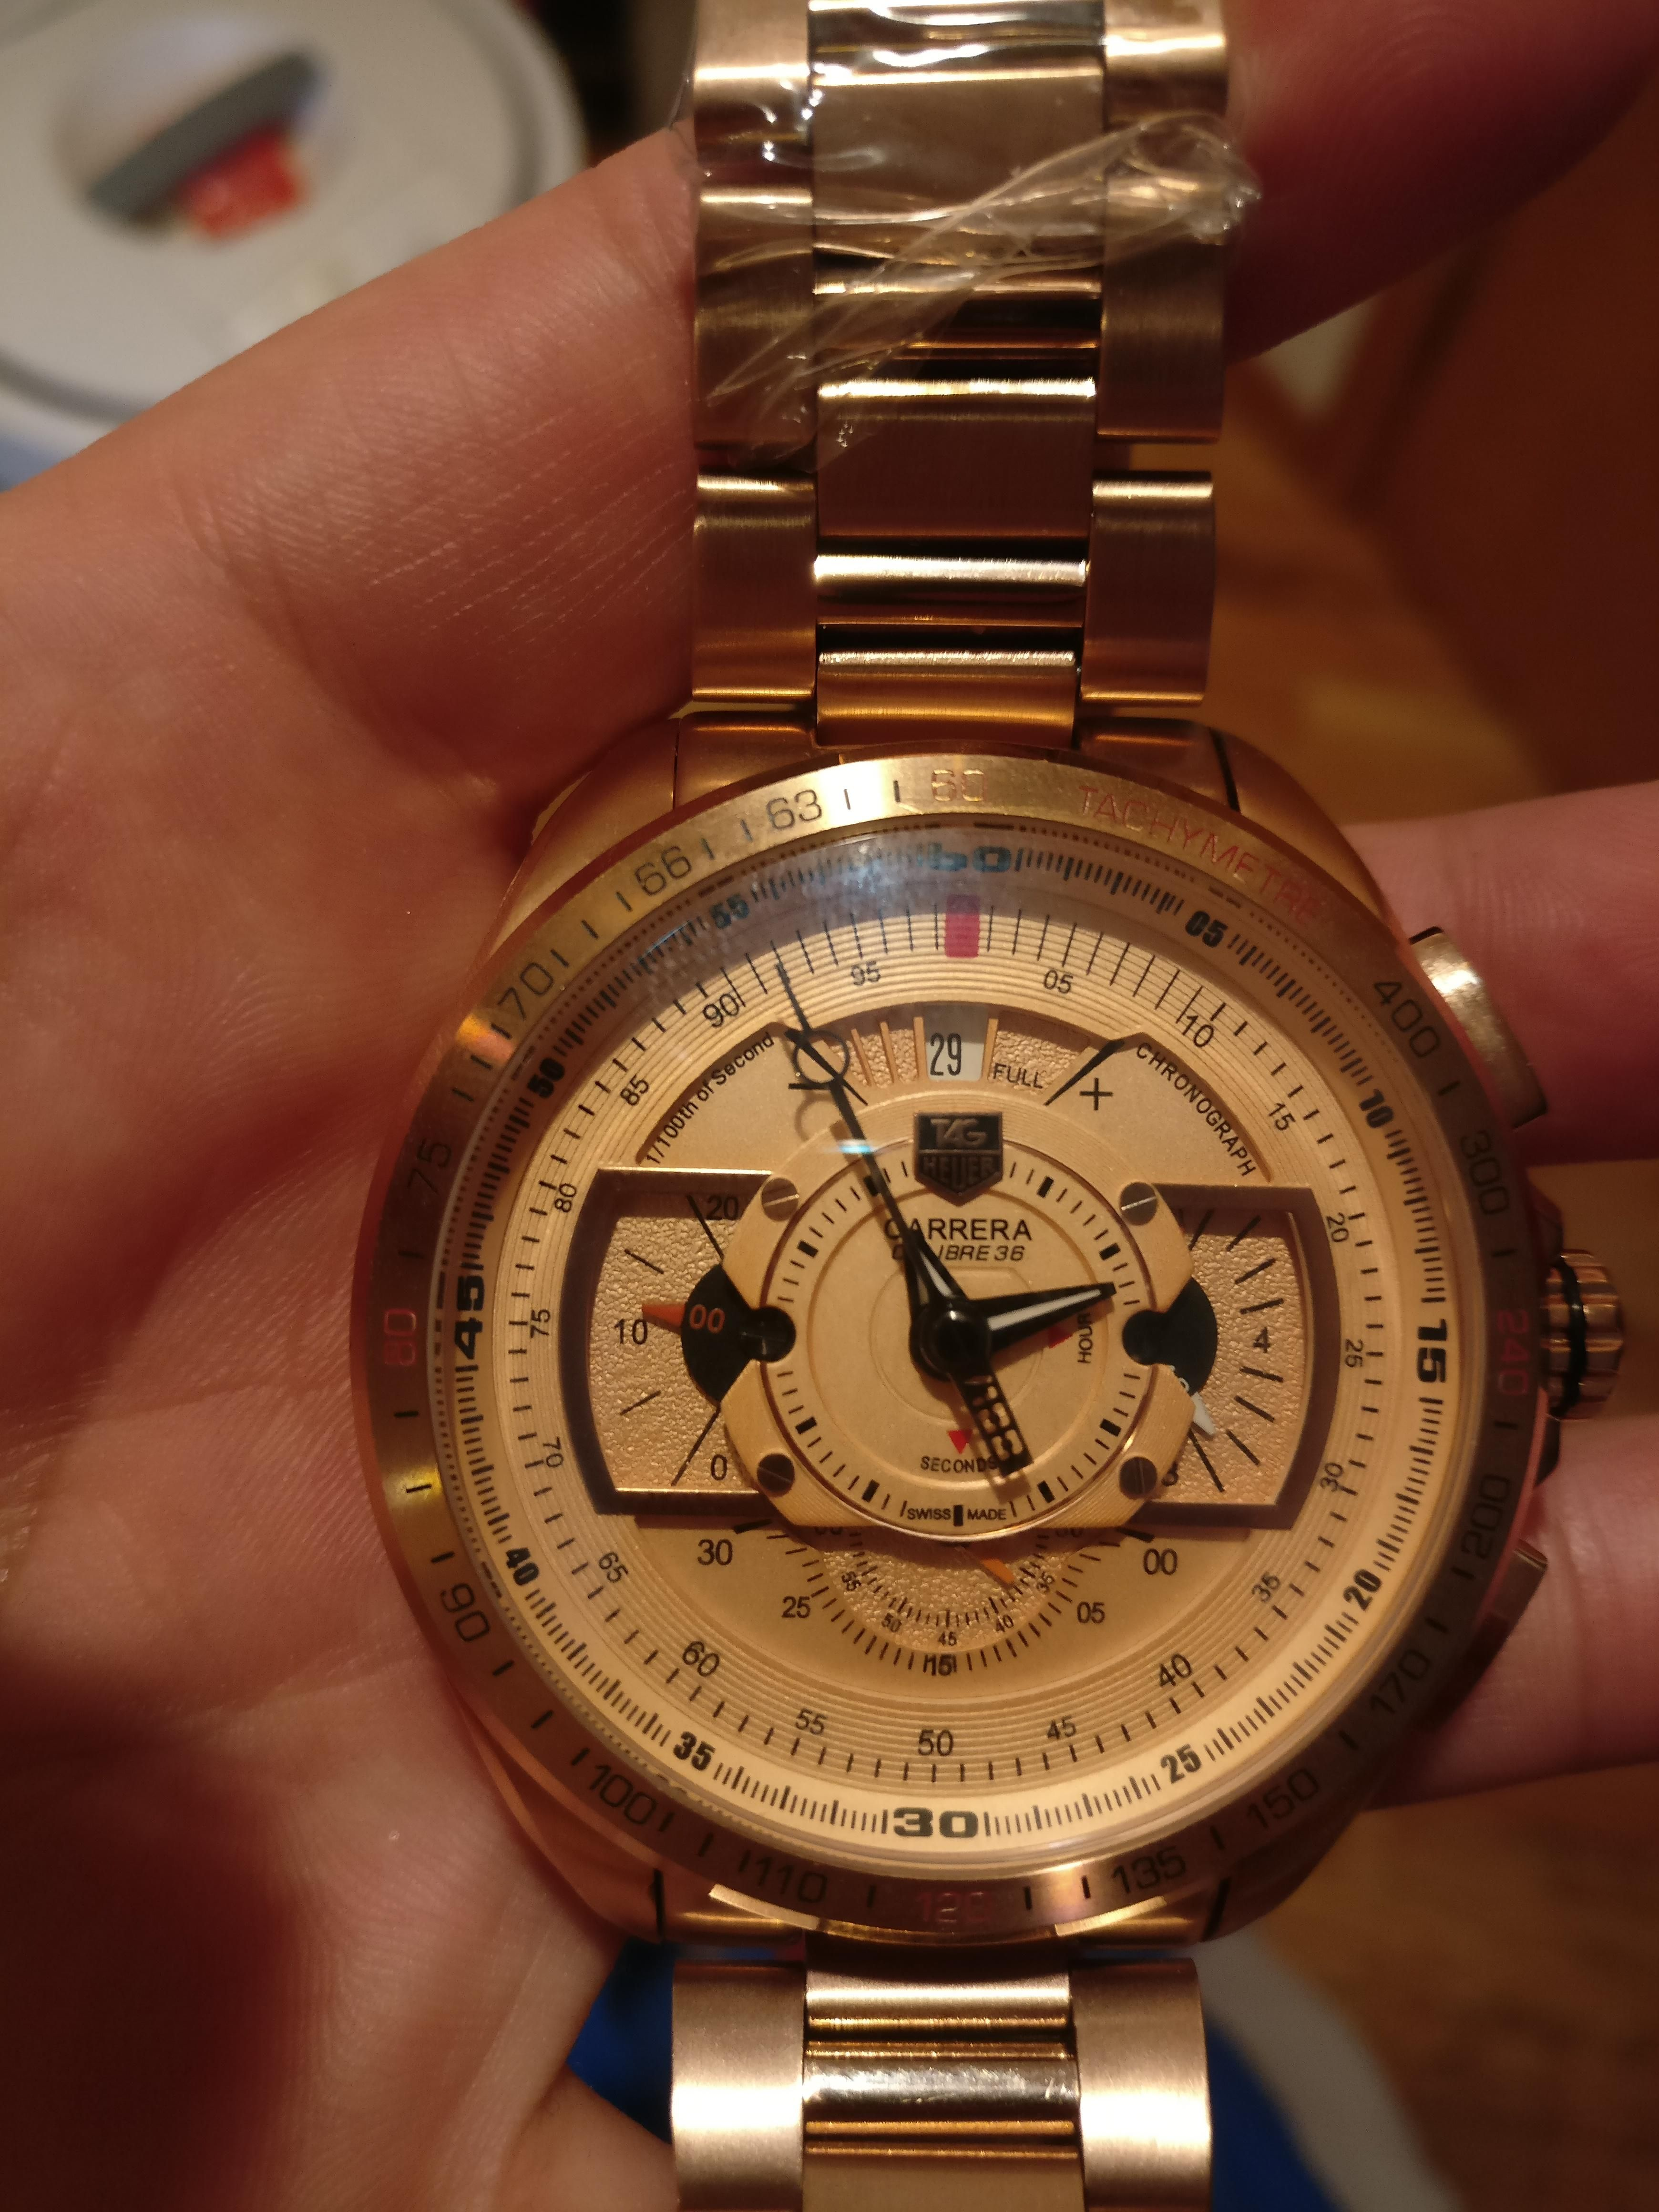 2132bb67ad5 Tag Heuer  Legit check and model identification http   ift.tt ...